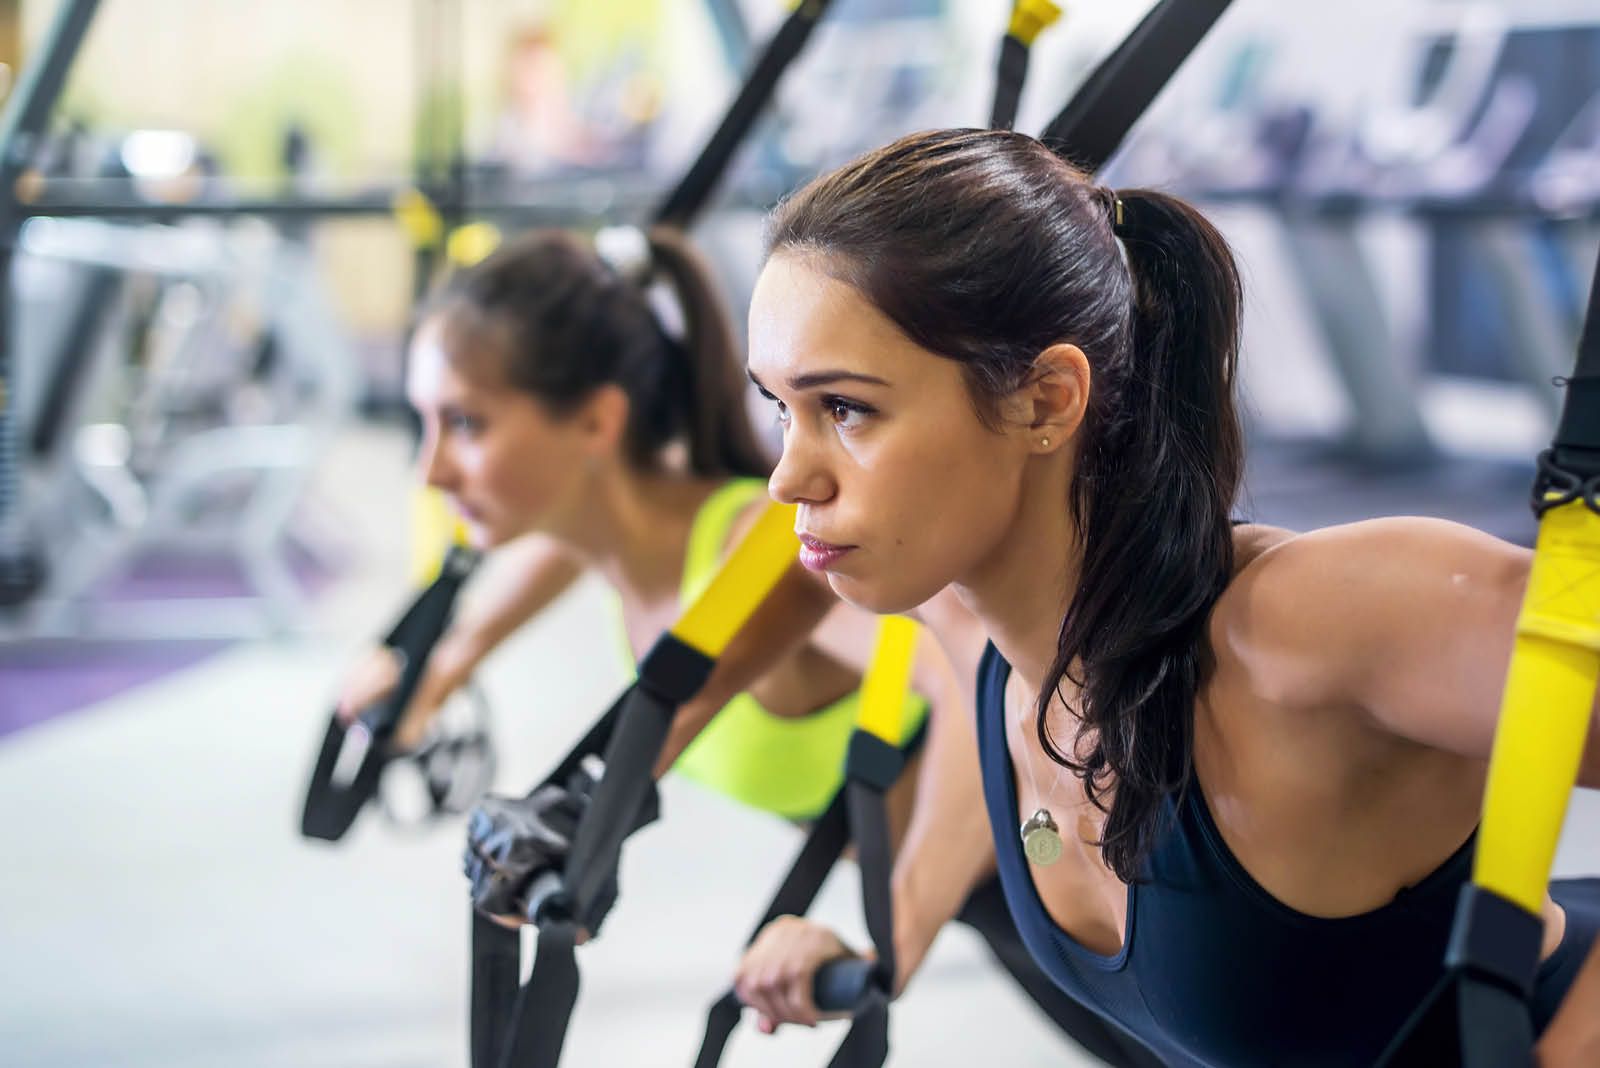 When you start off with fitness instruction taught to you by experts, you'll be sure to get to your goals in the safest most effective way possible.